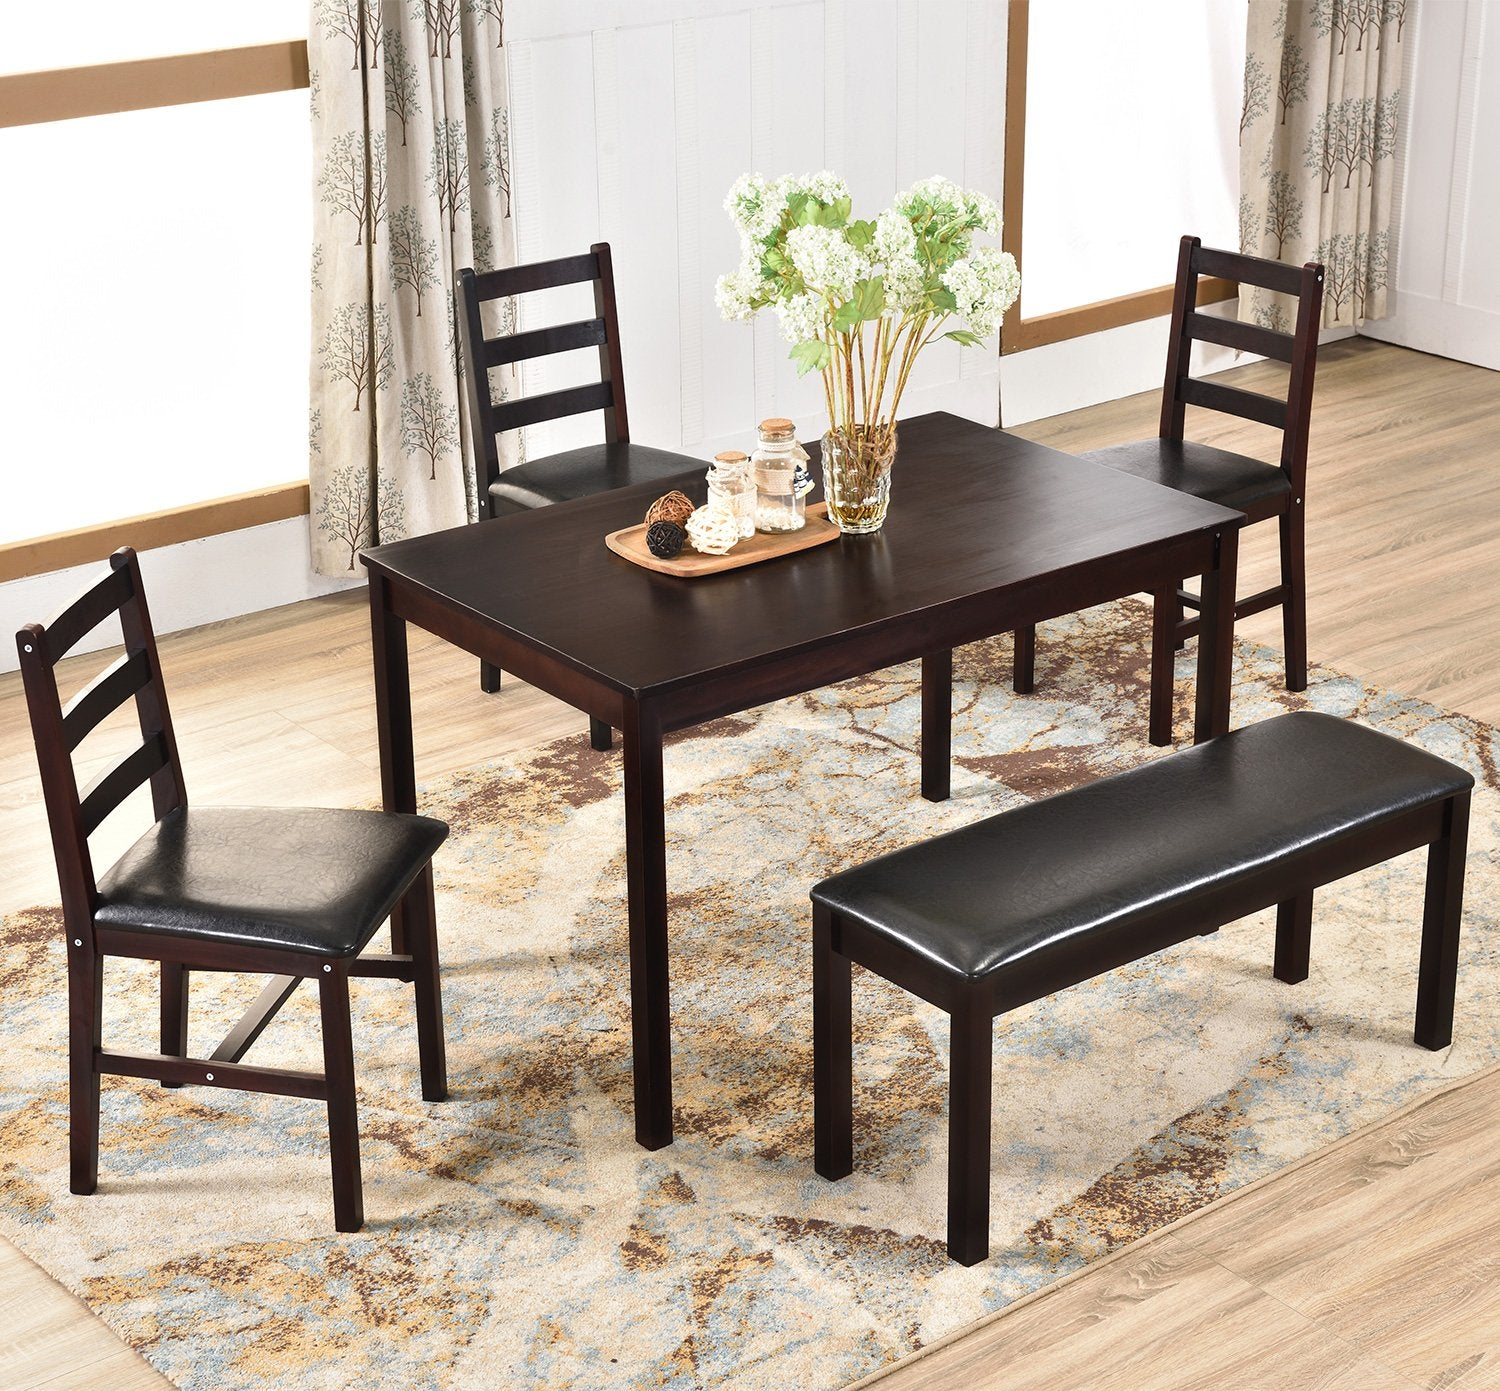 Camande Designs 5 Piece Dining Table Set, Solid Wood Kitchen Table Set